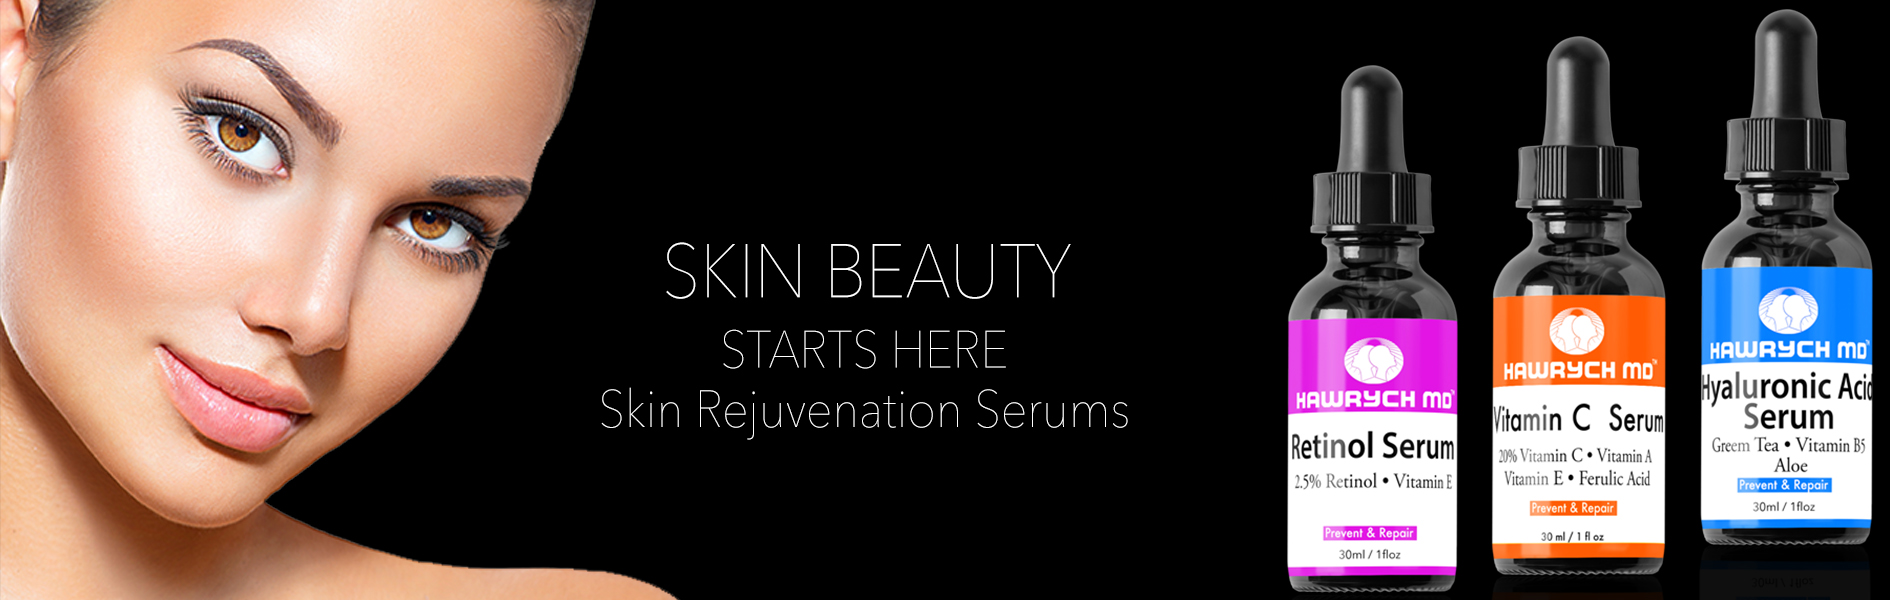 skin rejuvenation anti aging serum